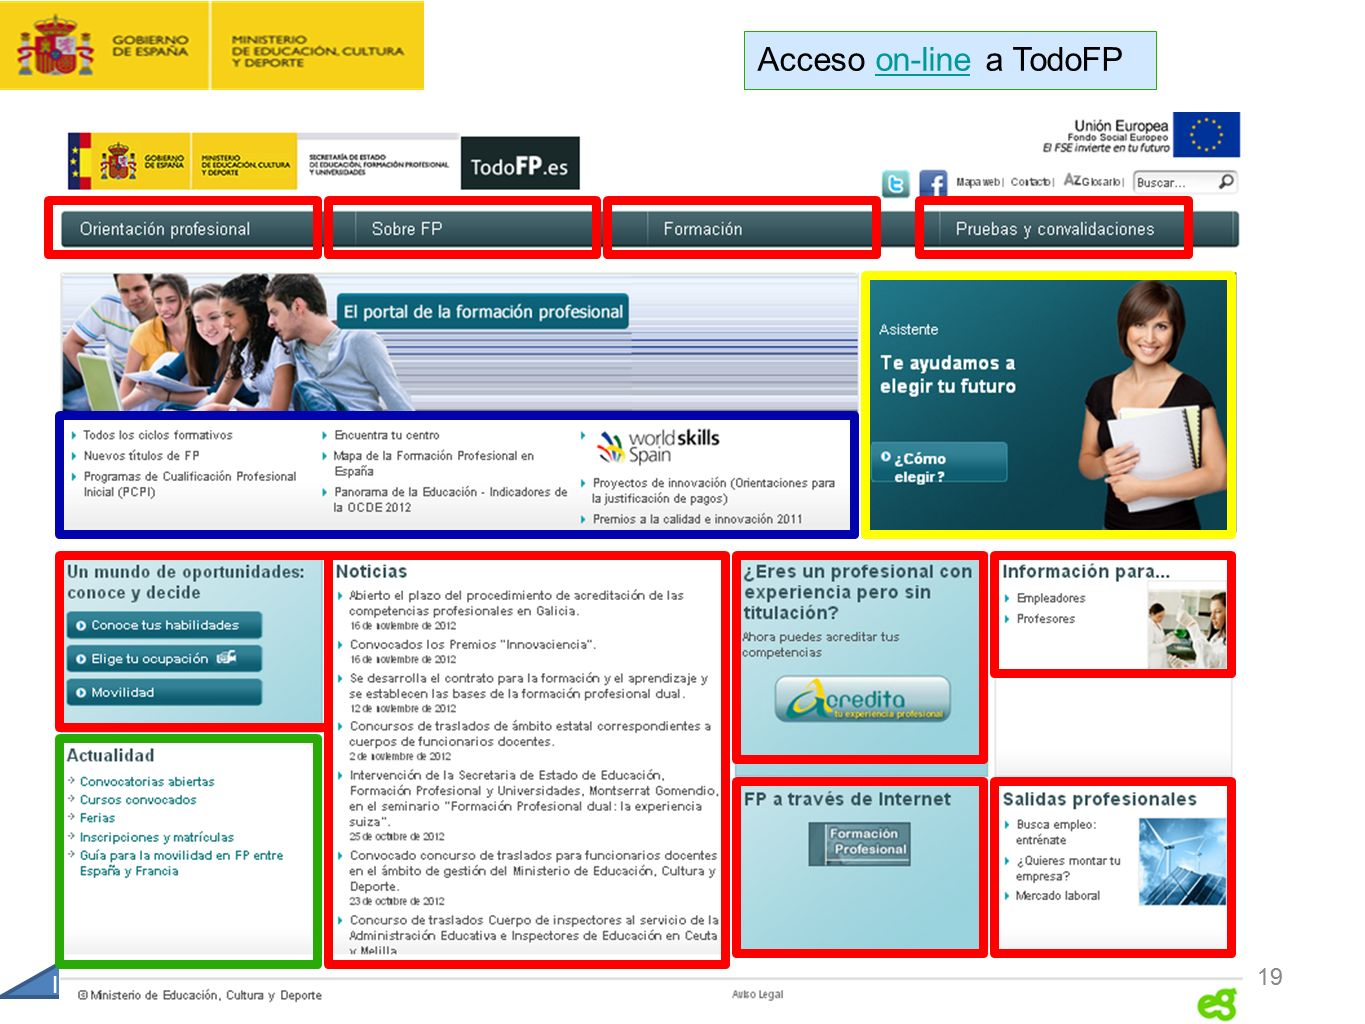 Acceso on-line a TodoFP